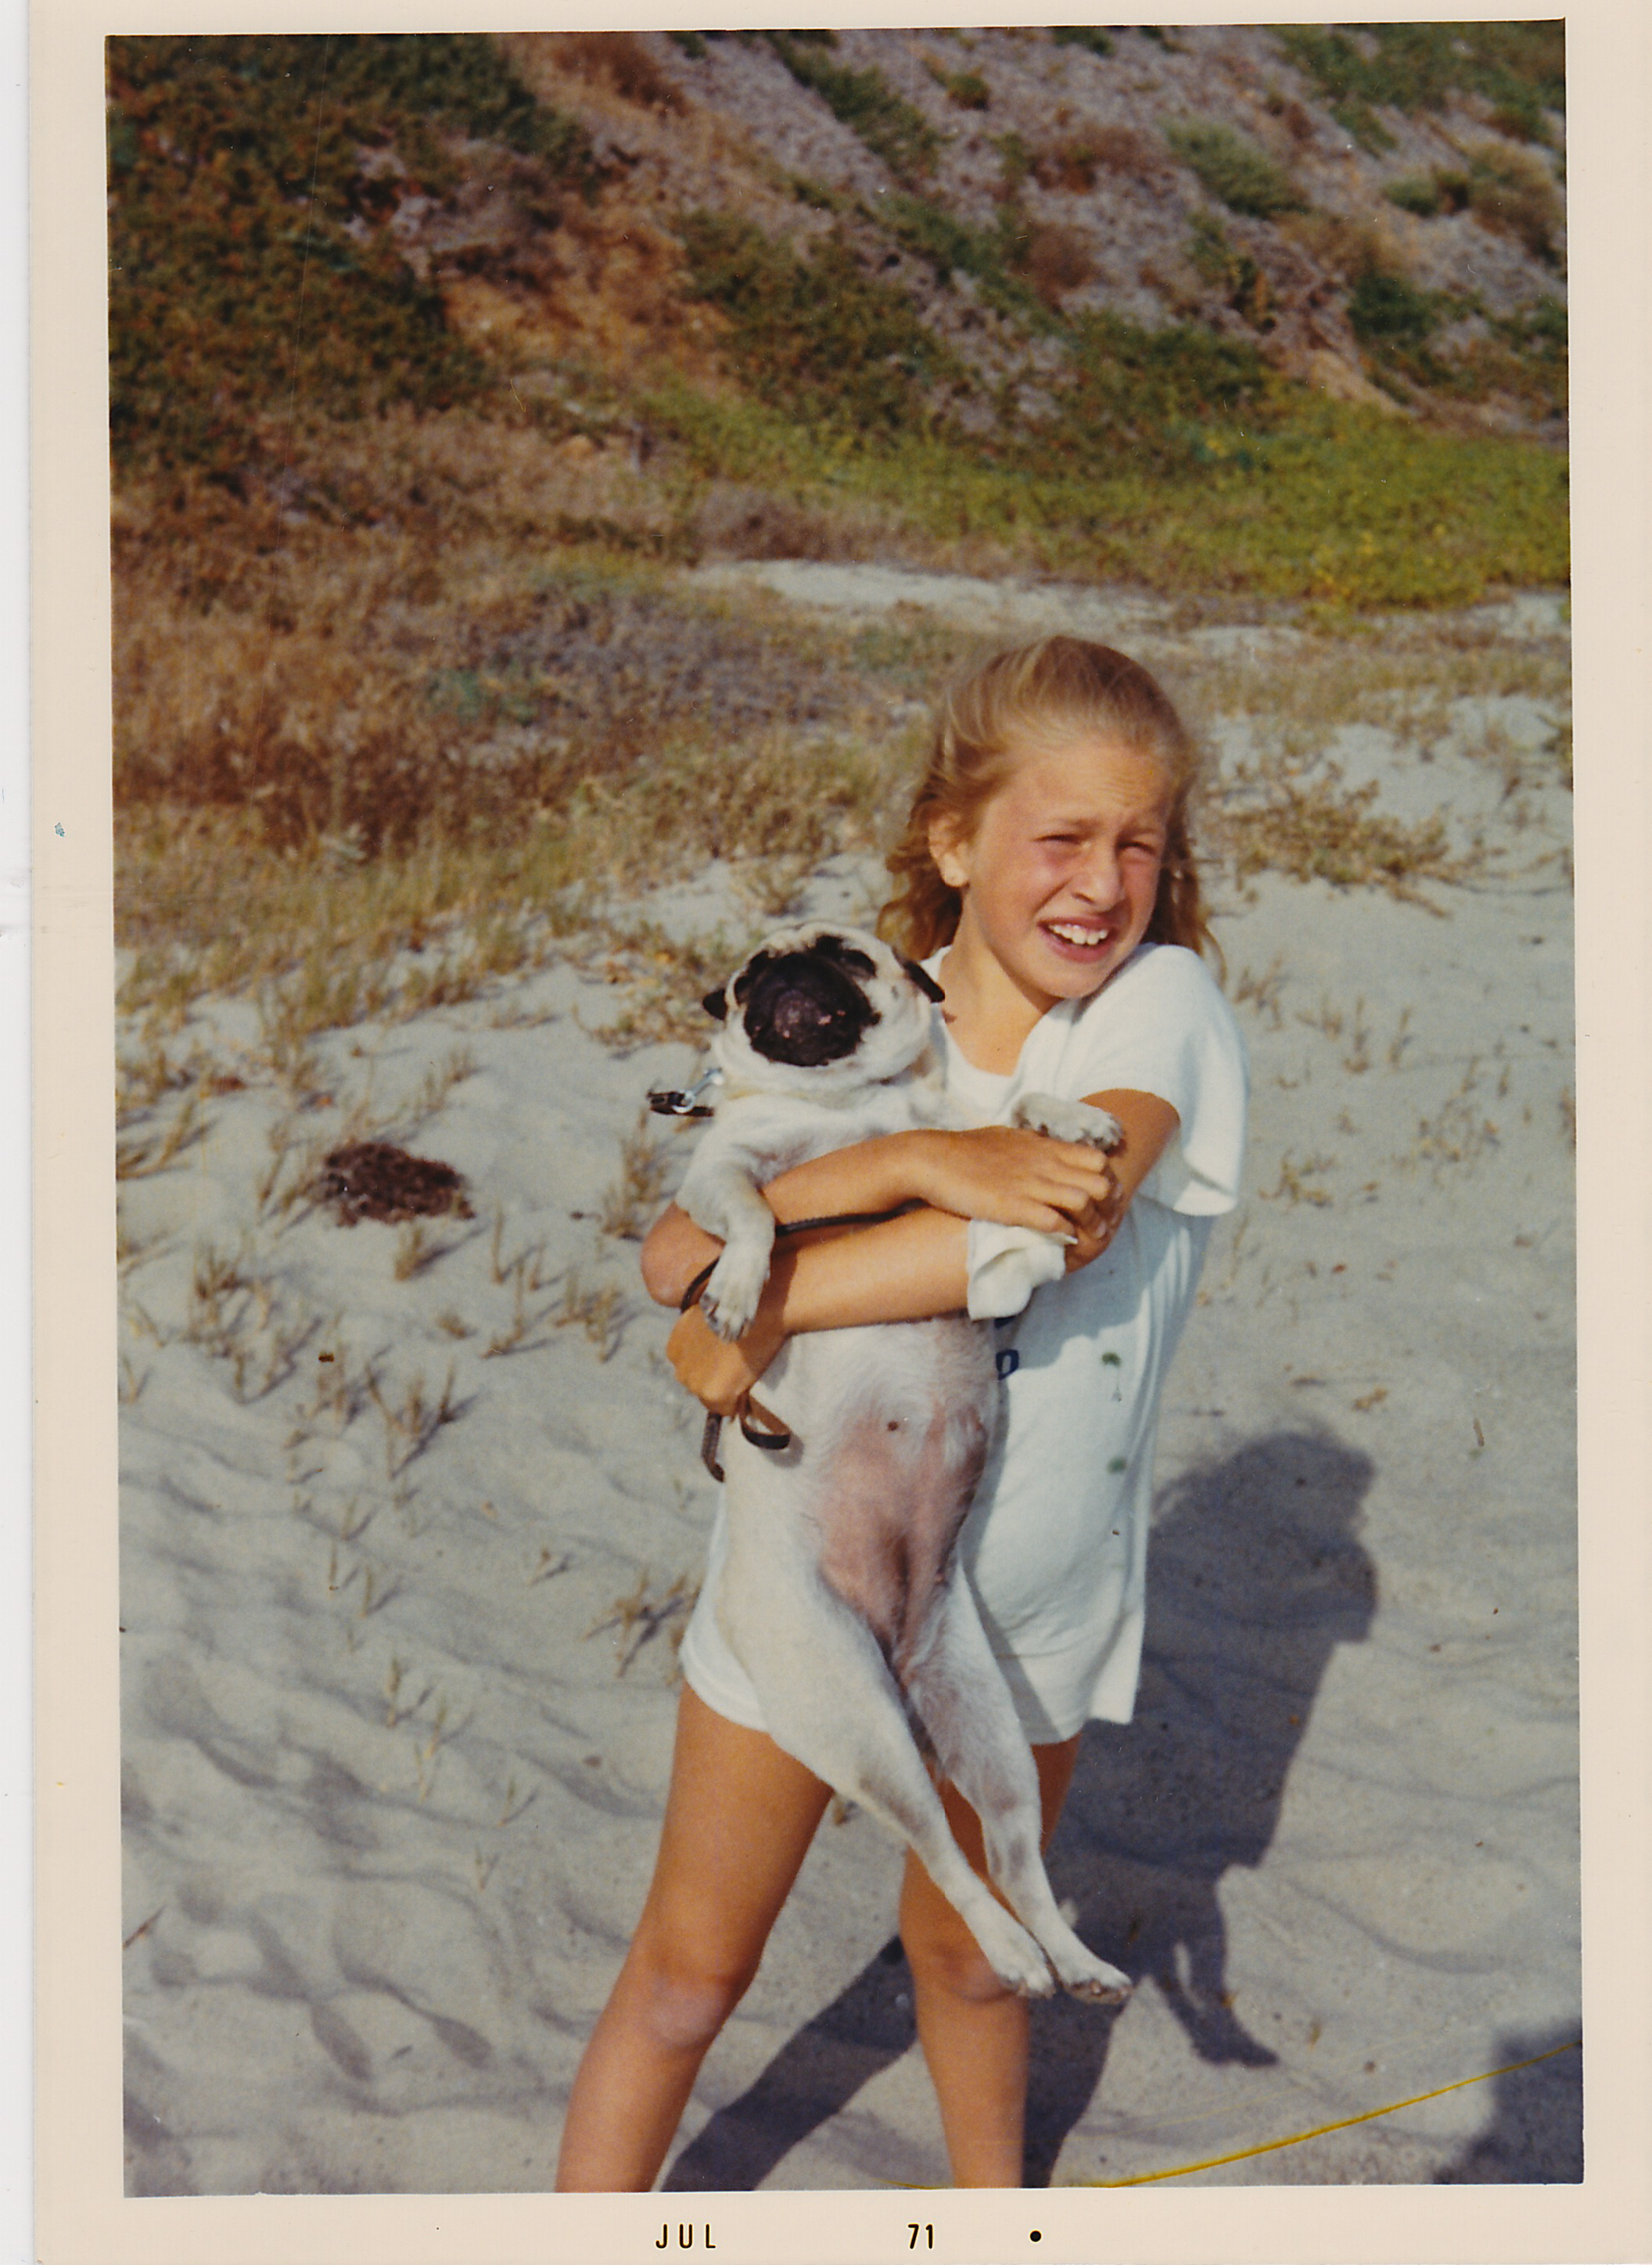 I took my own willful approach to dog wrangling as a child. . .